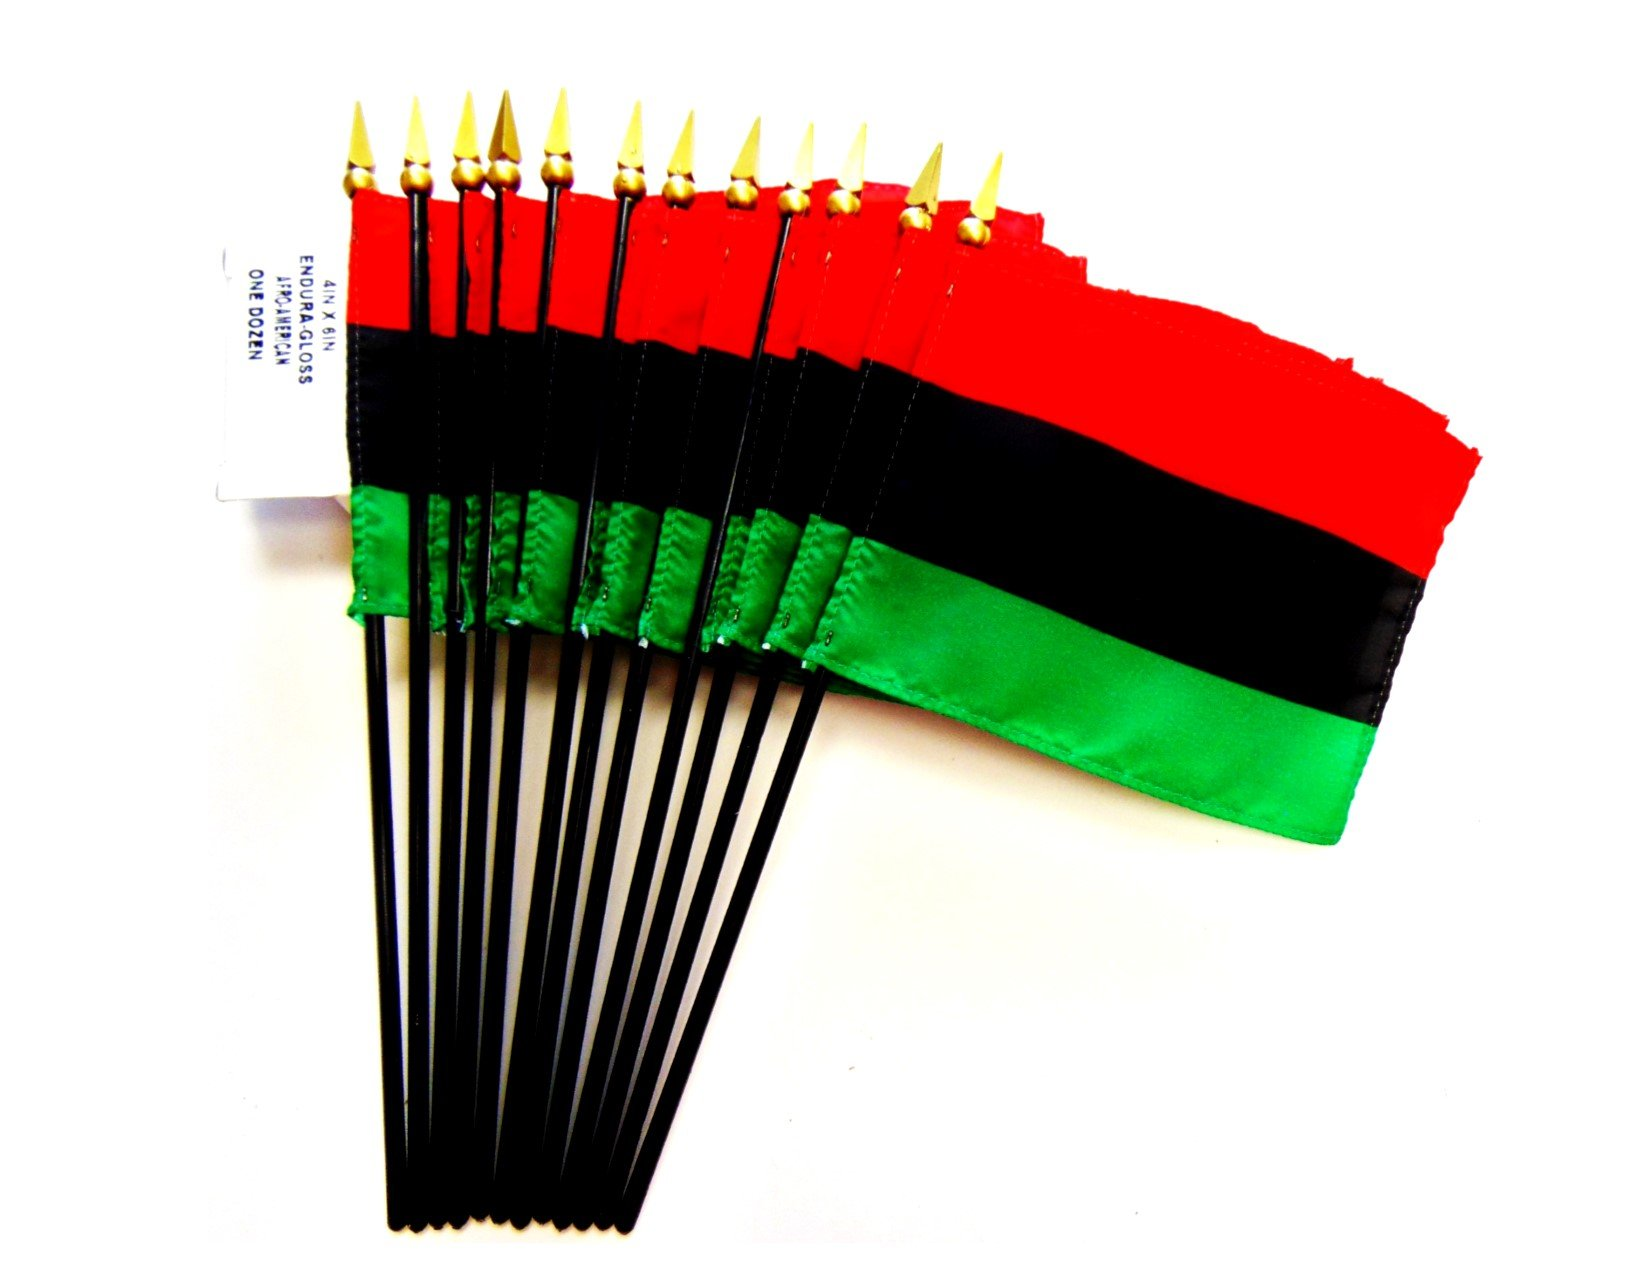 MADE IN USA!! Box of 12 Afro American 4''x6'' Miniature Desk & Table Flags; 12 American Made Small Mini African American Flags in a Custom Made Cardboard Box Specifically Made for These Flags